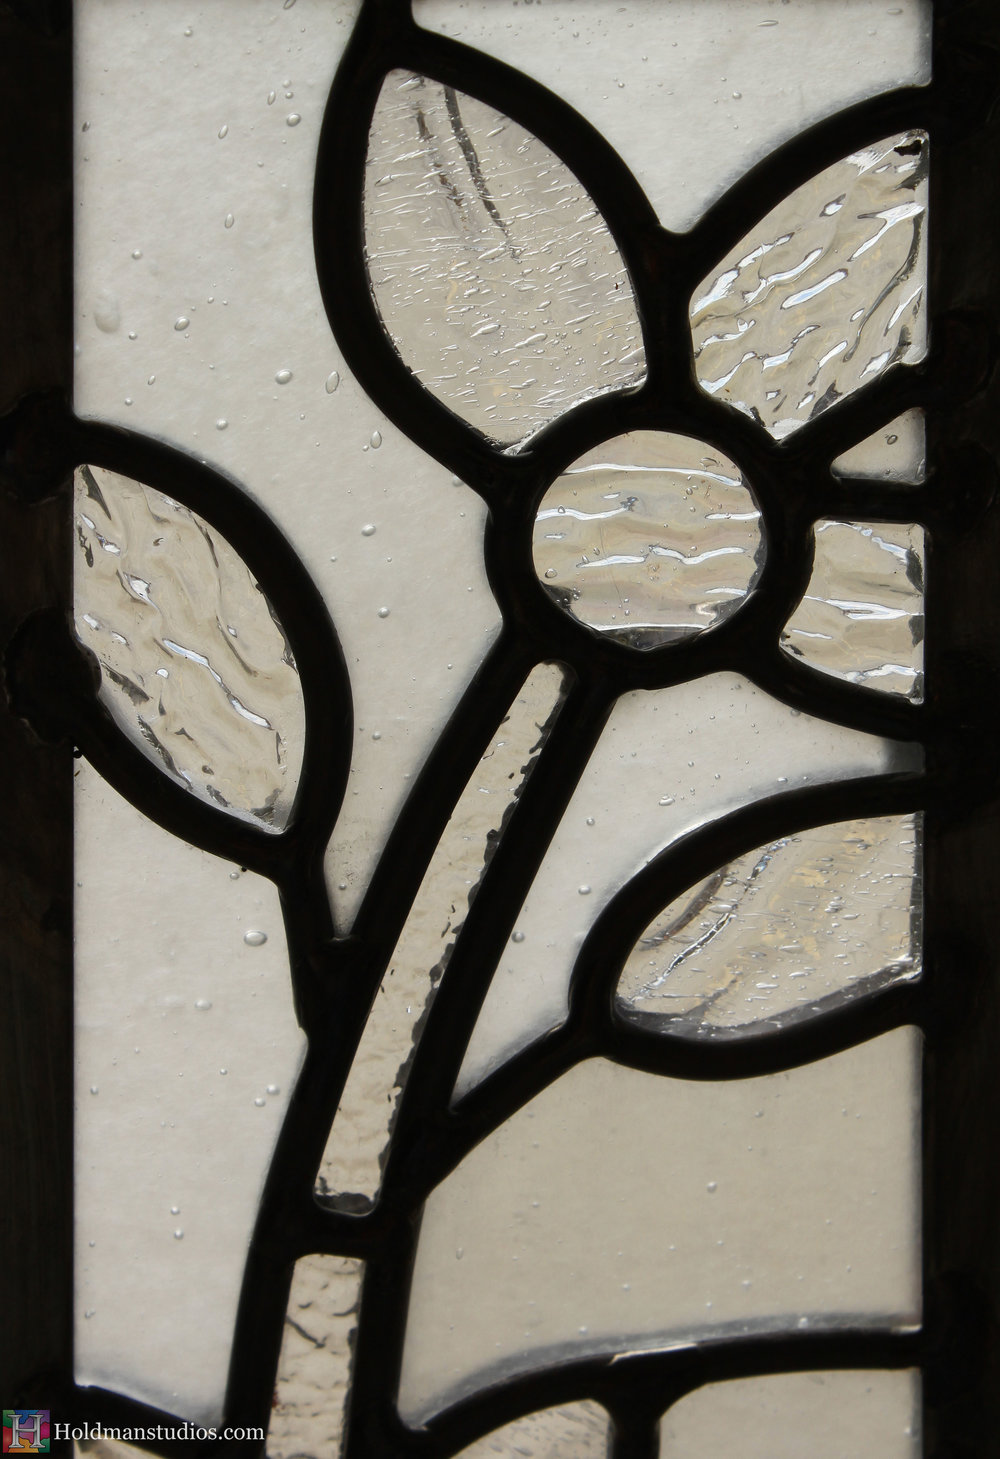 Holdman_Studios_Stained_Art_Glass_LDS_Mormon_Temple_Boise_Idaho_Potato_Flower_Window_Border_Closeup.jpg